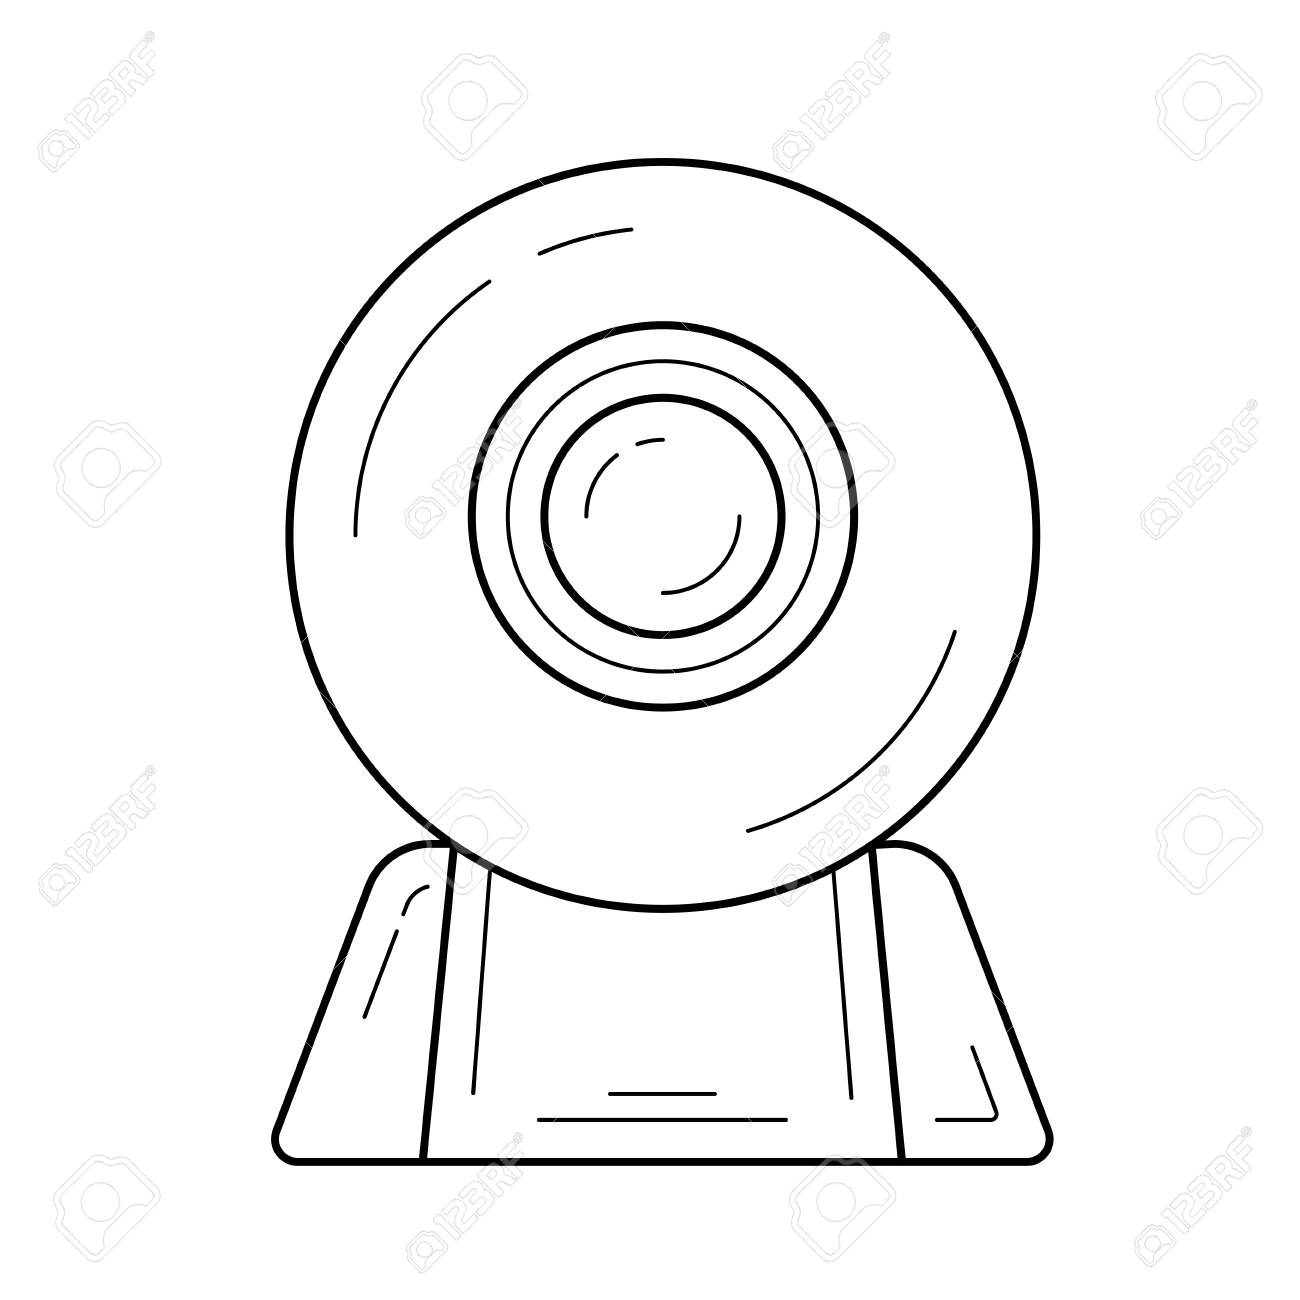 web cam vector line icon isolated on white background web camera Kinect Camera System vector web cam vector line icon isolated on white background web camera line icon for infographic website or app icon designed on a grid system